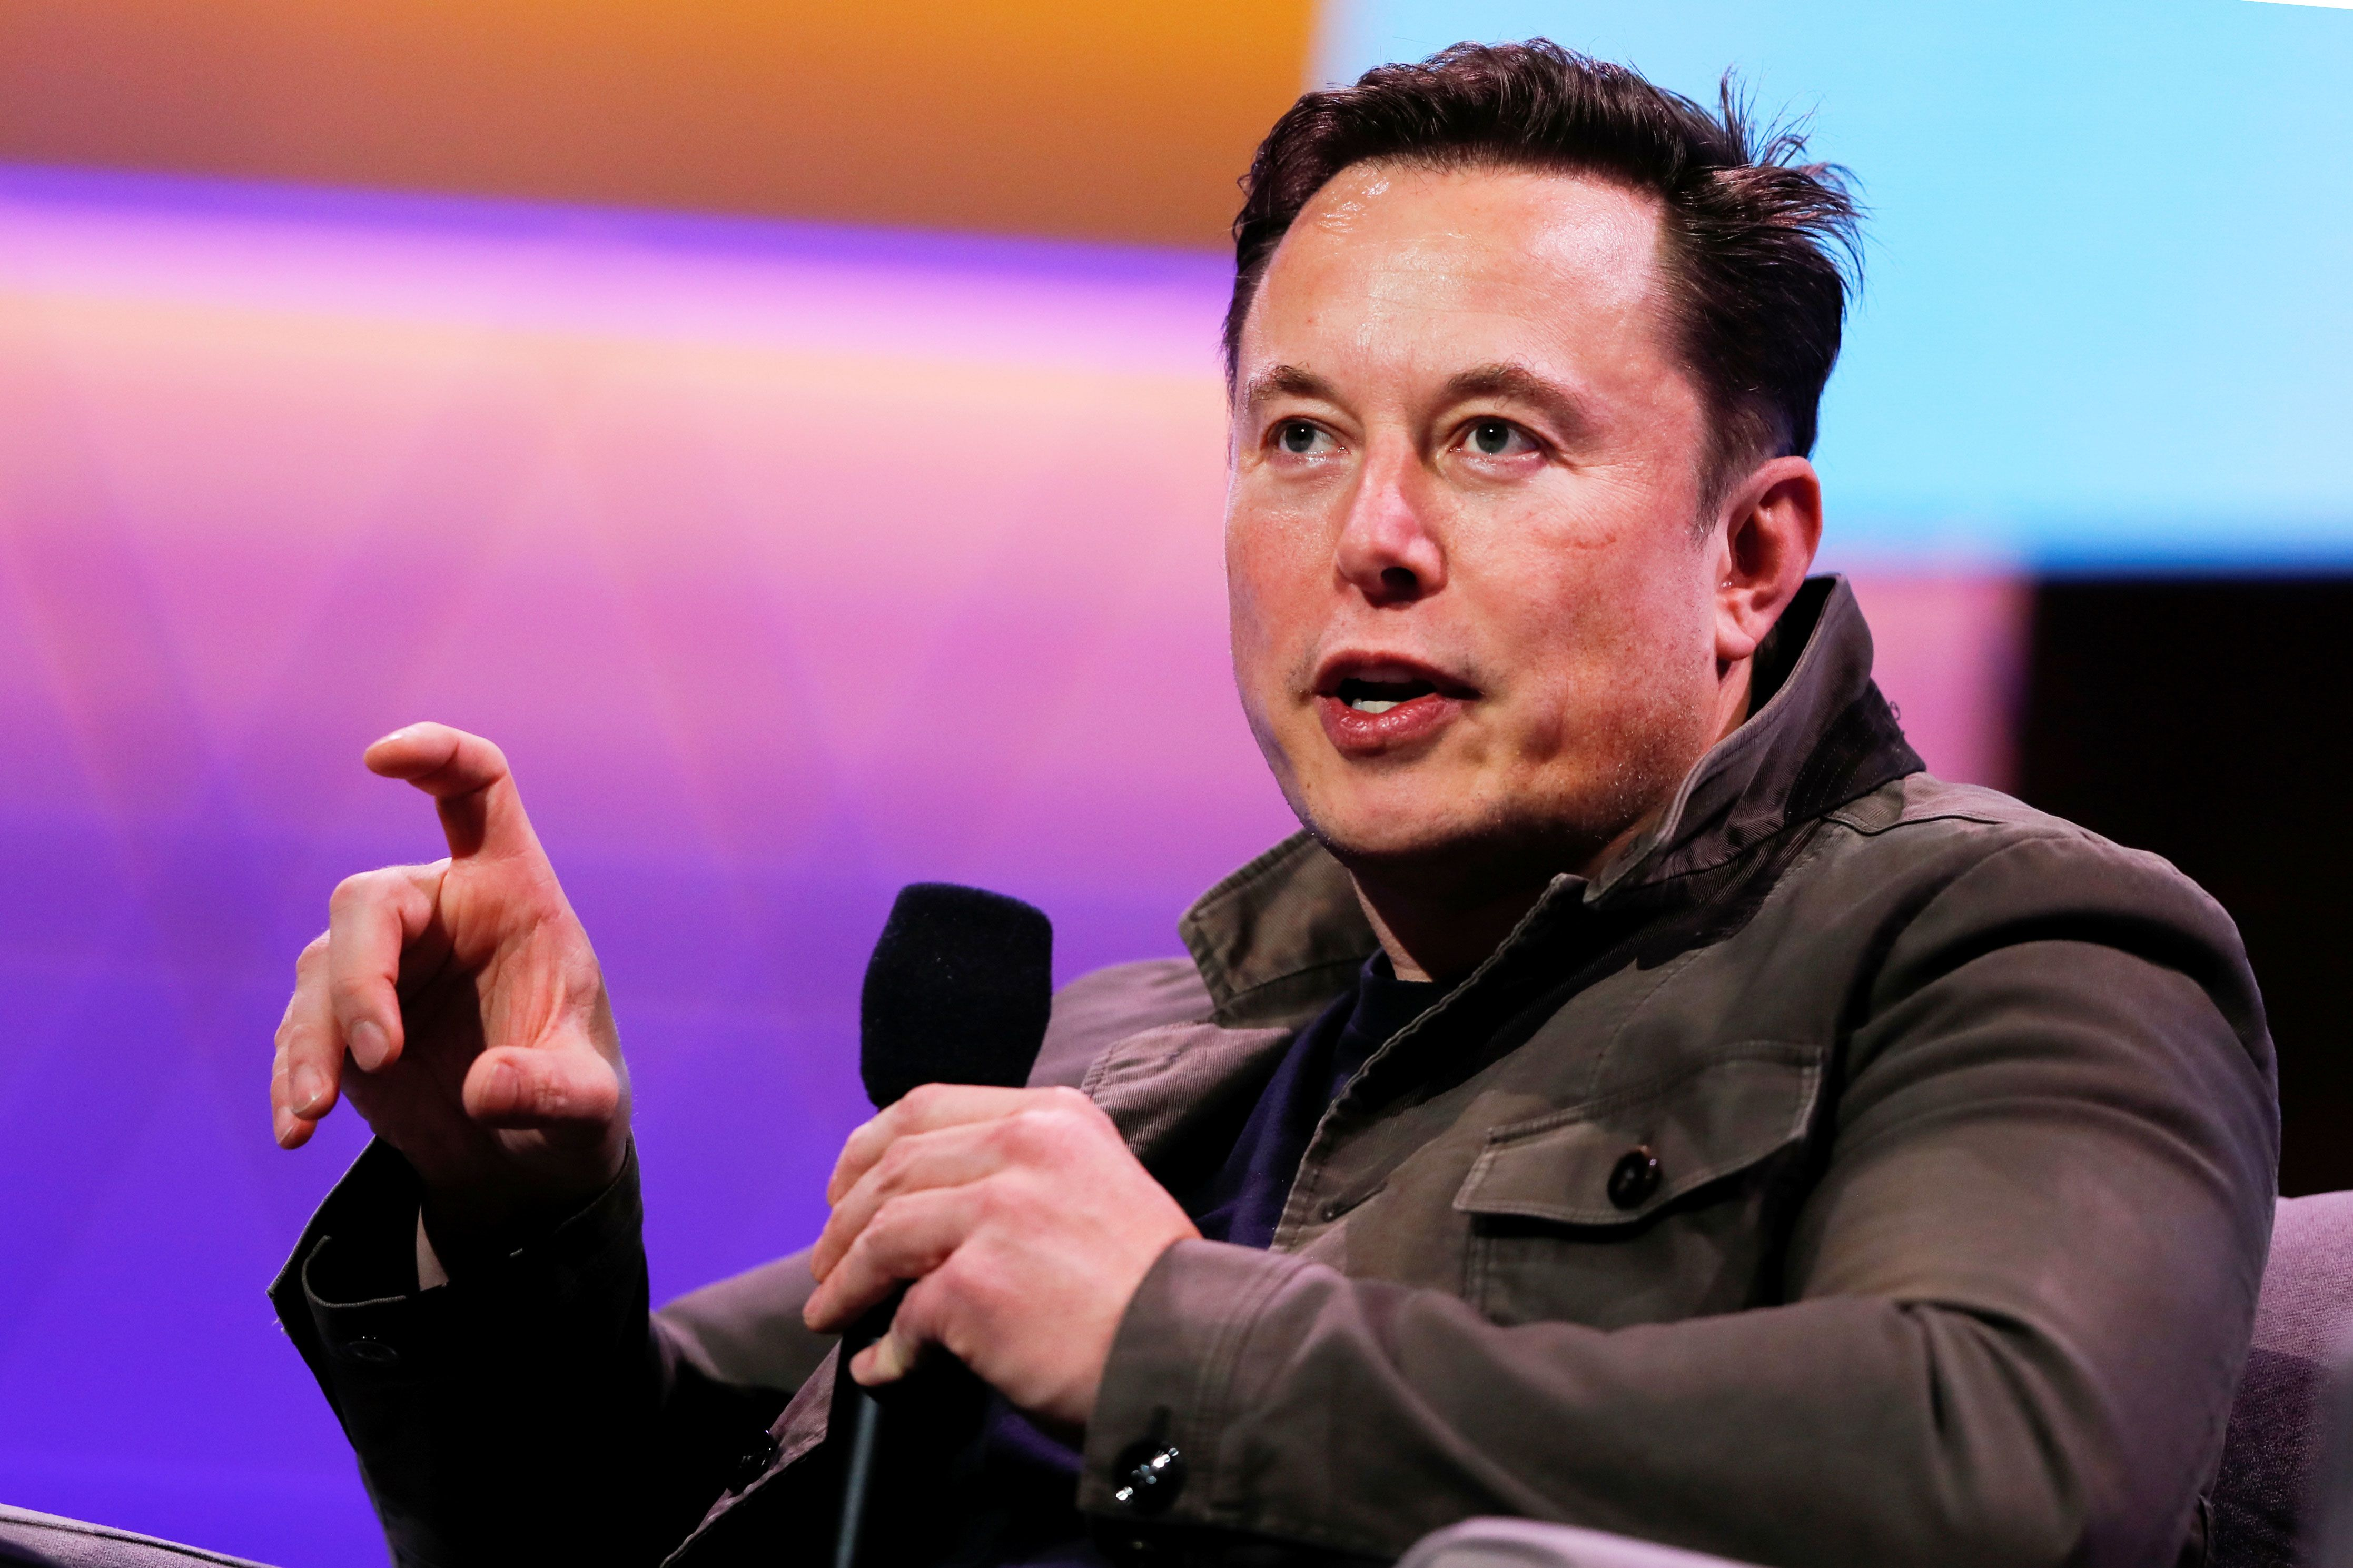 Tesla investors regain confidence in a quieter Musk as eyes turn to production